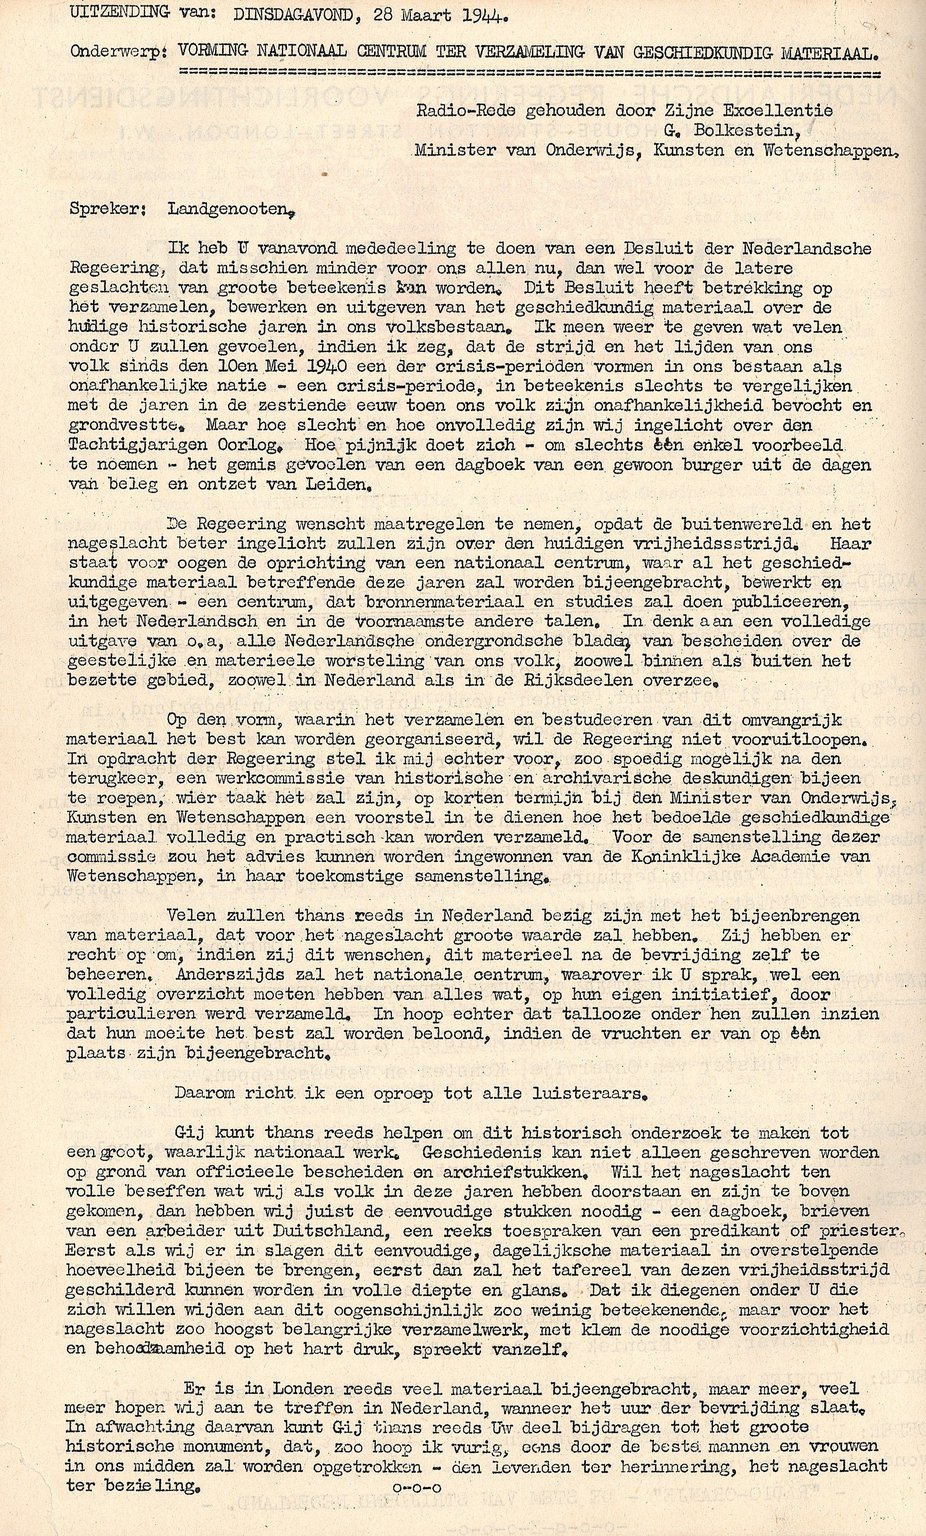 The speech by Minister Gerrit Bolkestein calling on the Dutch to hold on to their personal documents from the war (28 March 1944).